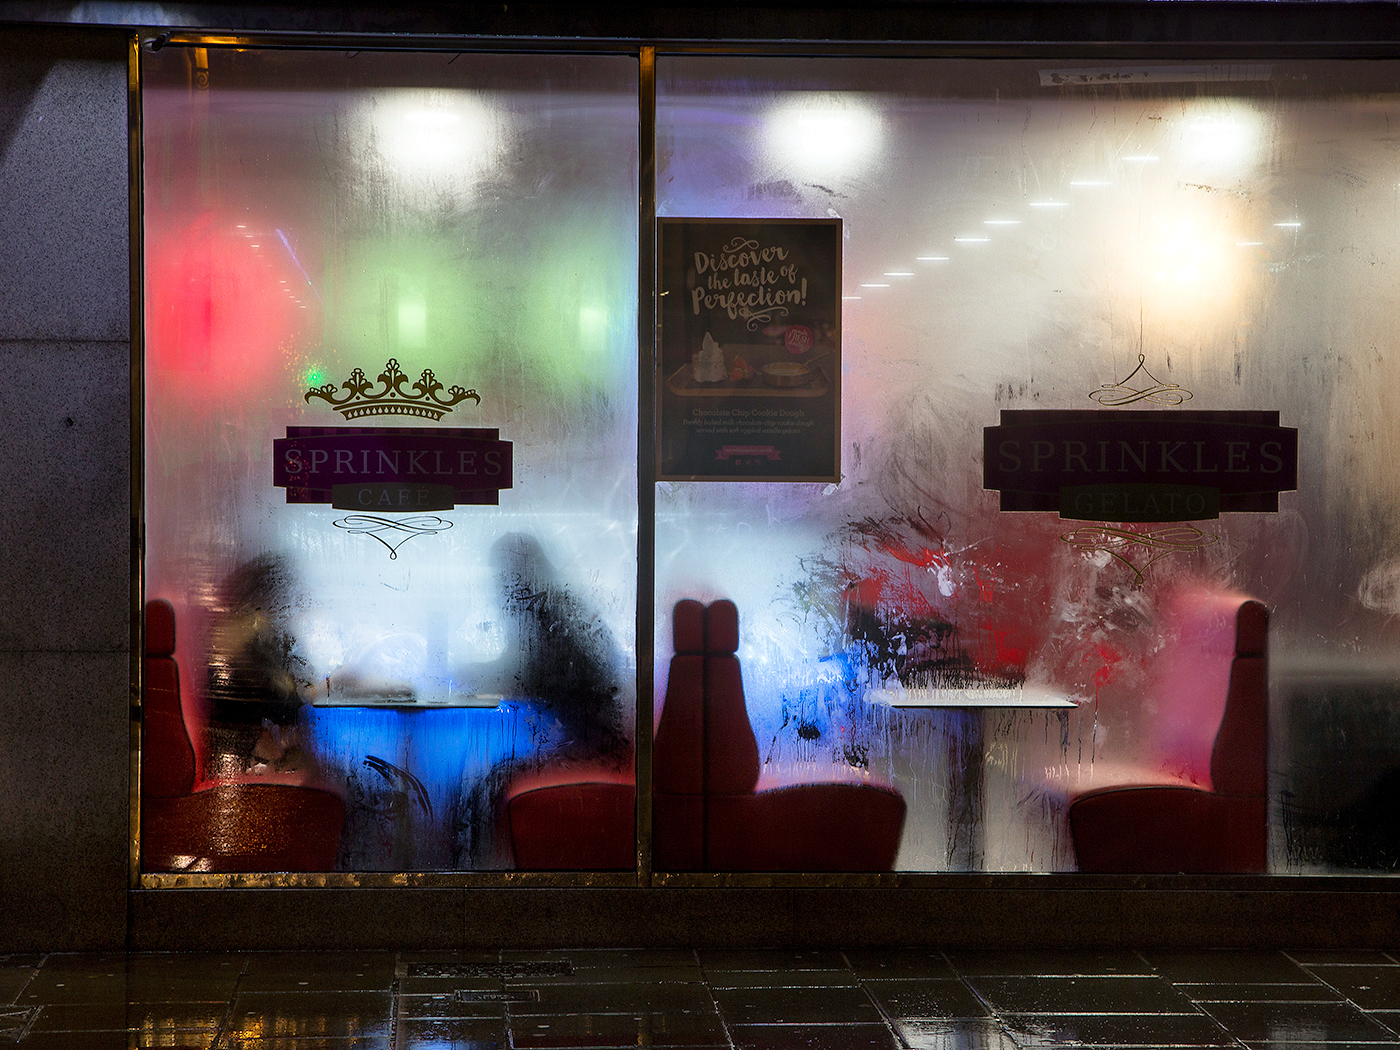 12_Fast food on a wet night_Tony Oliver